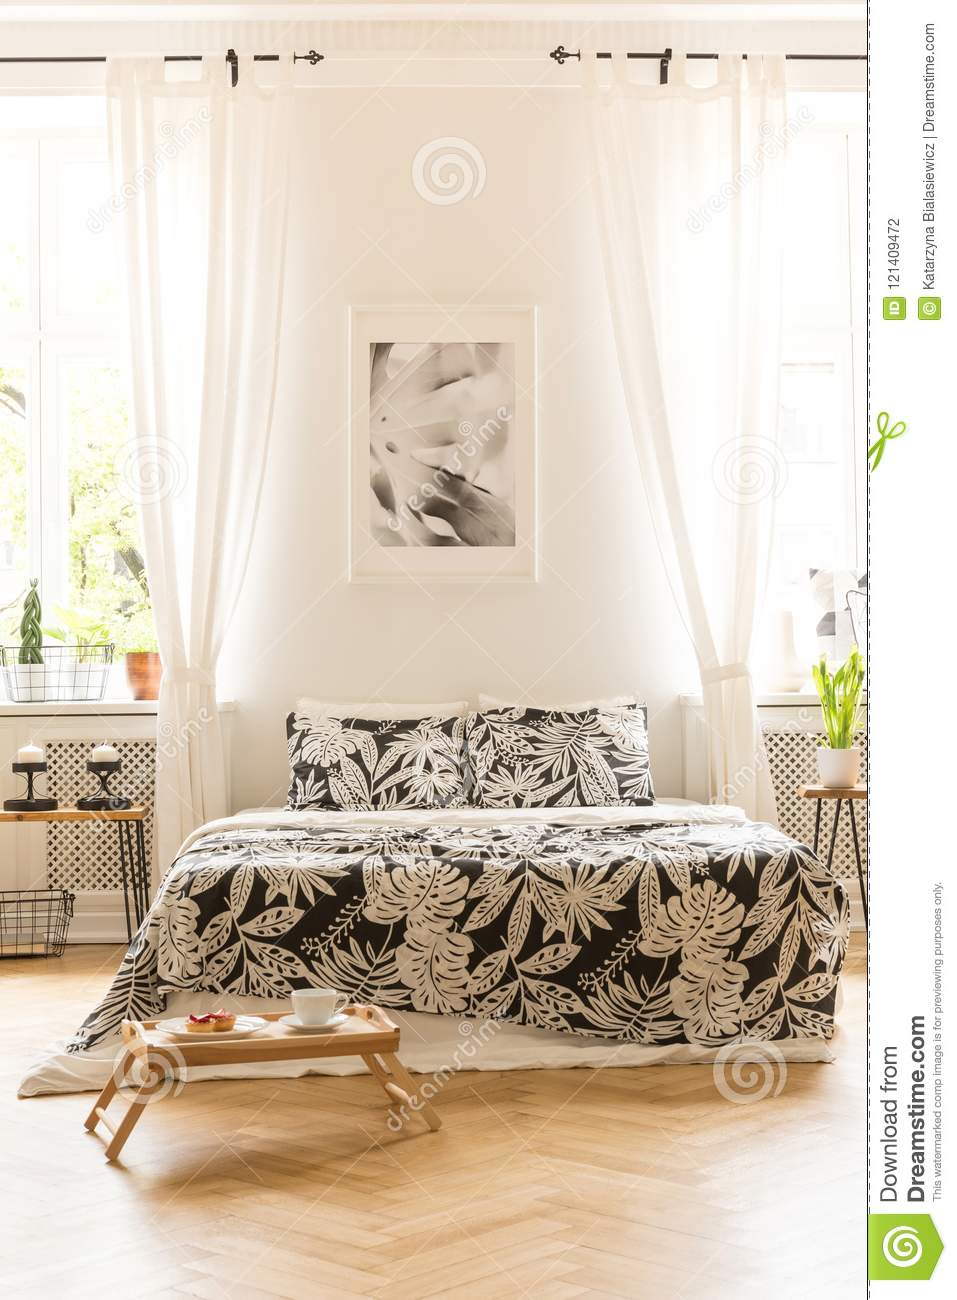 Front View Of A Double Bed With Floral Sheets, Graphic On The Wa